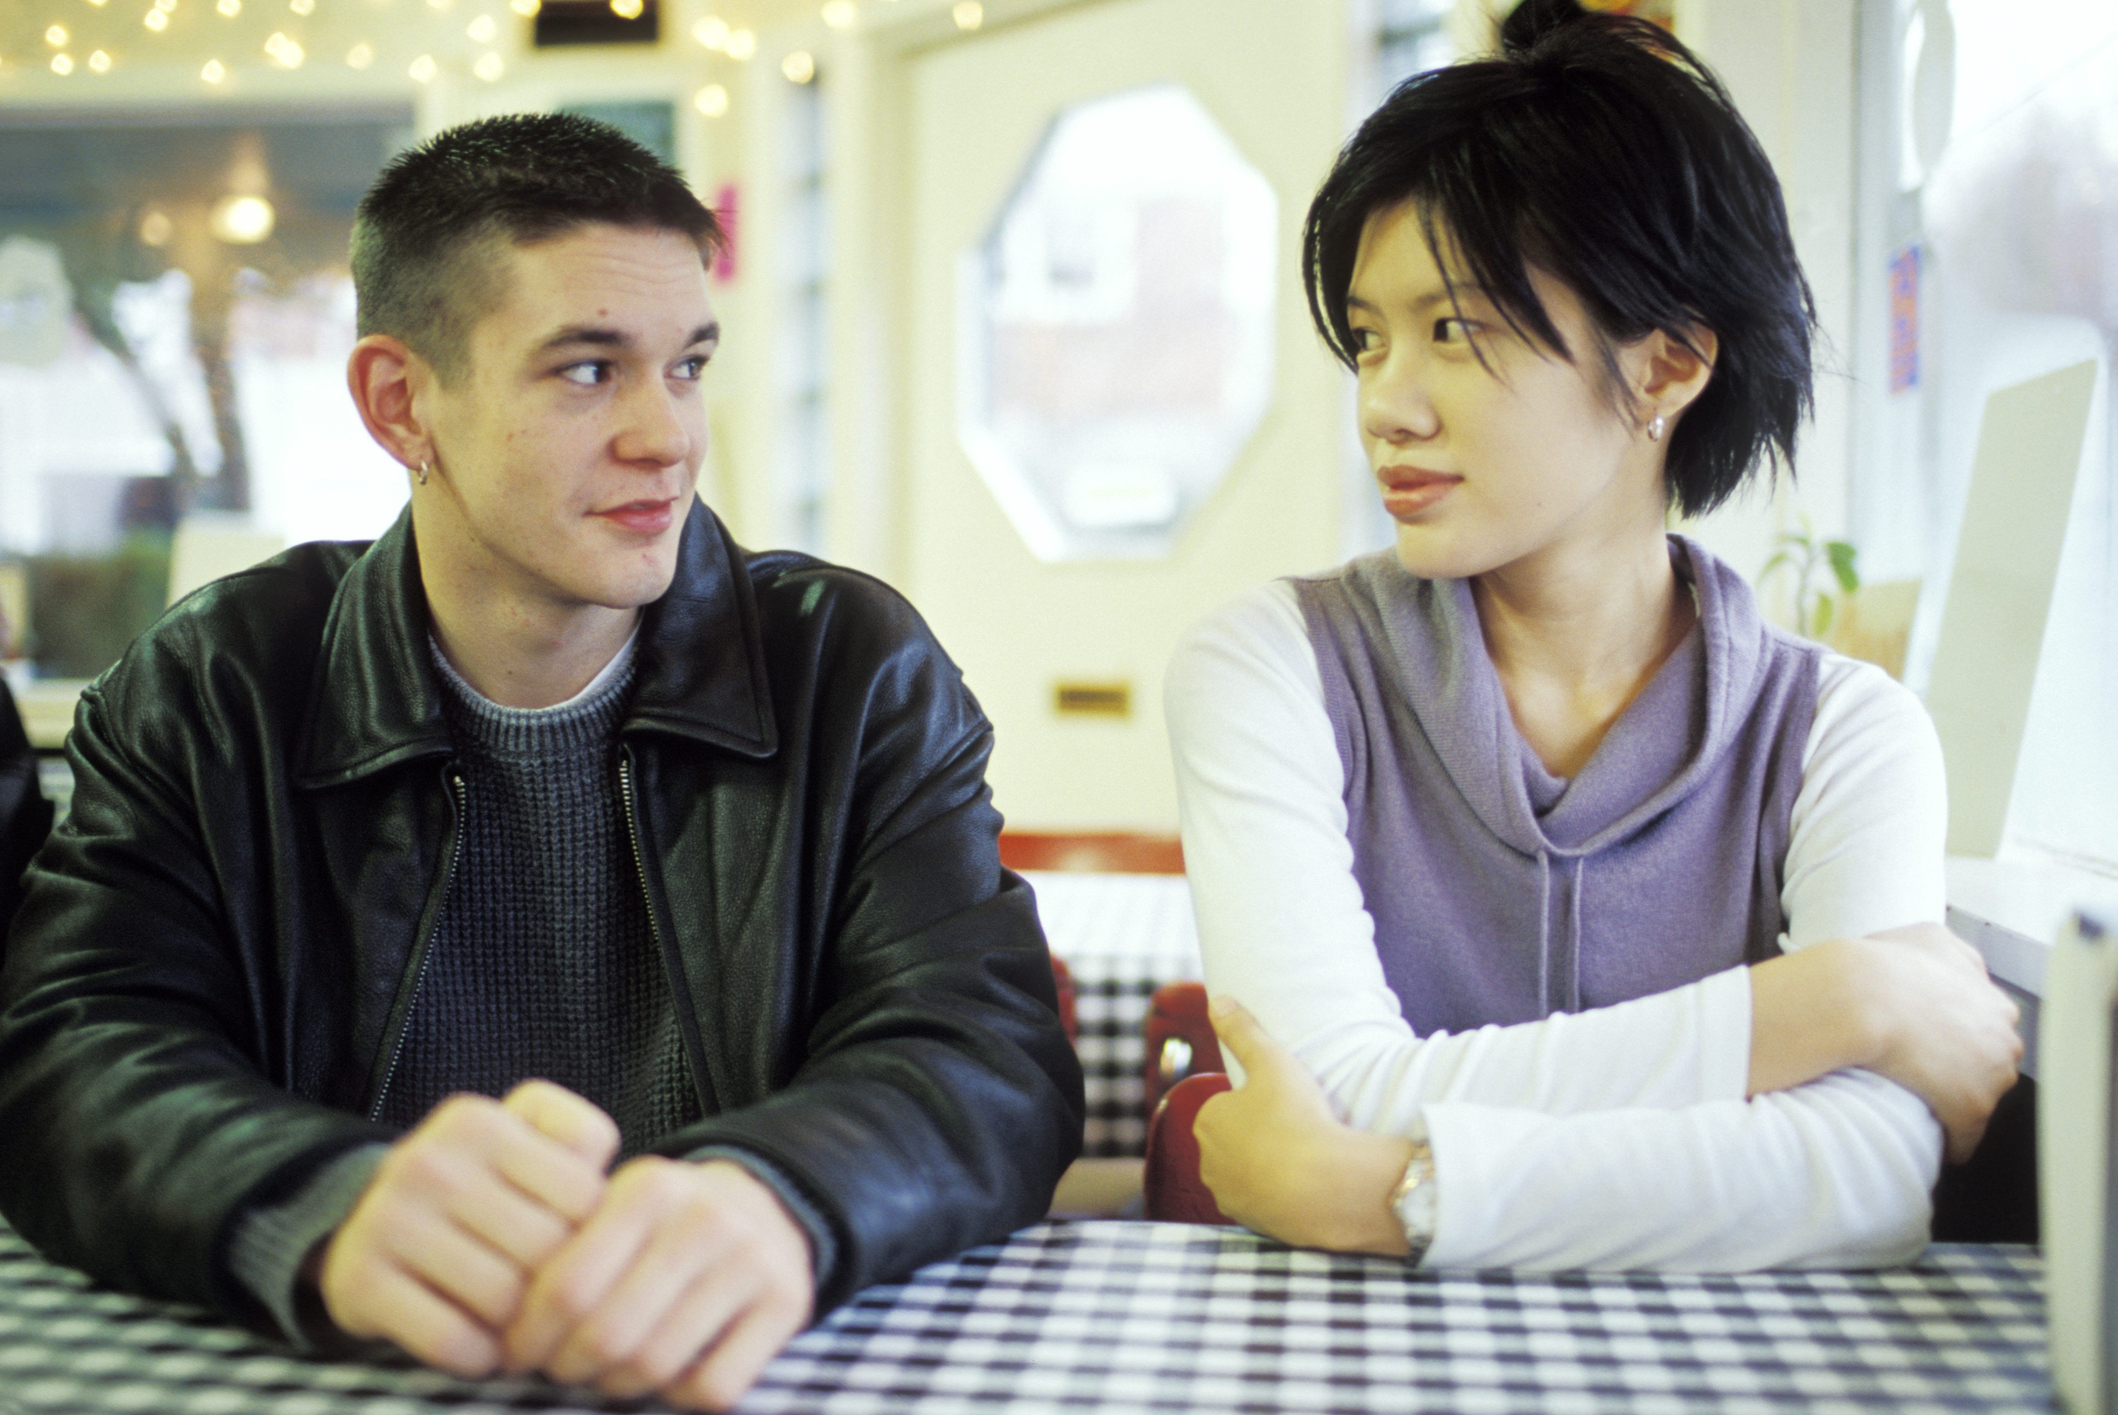 Man and Woman Talking at a Diner